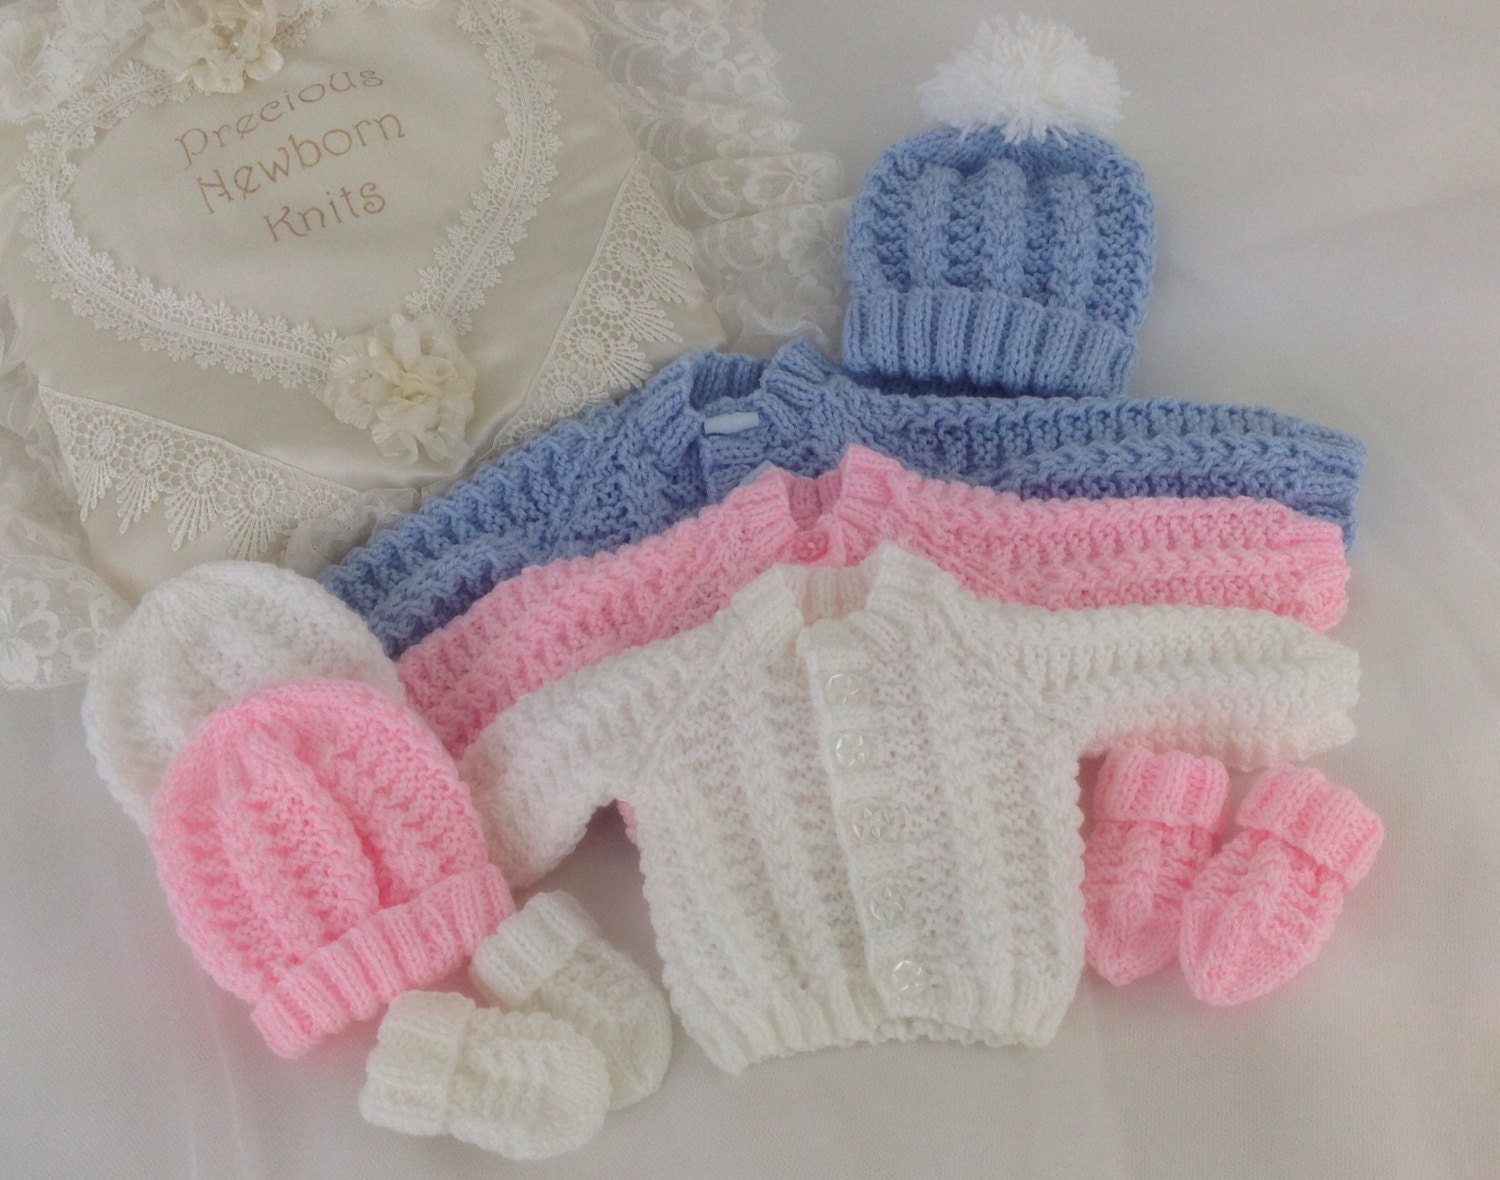 Knitting Patterns For Neonatal Babies : Baby Knitting Pattern Boys Girls Early Baby Reborn Dolls